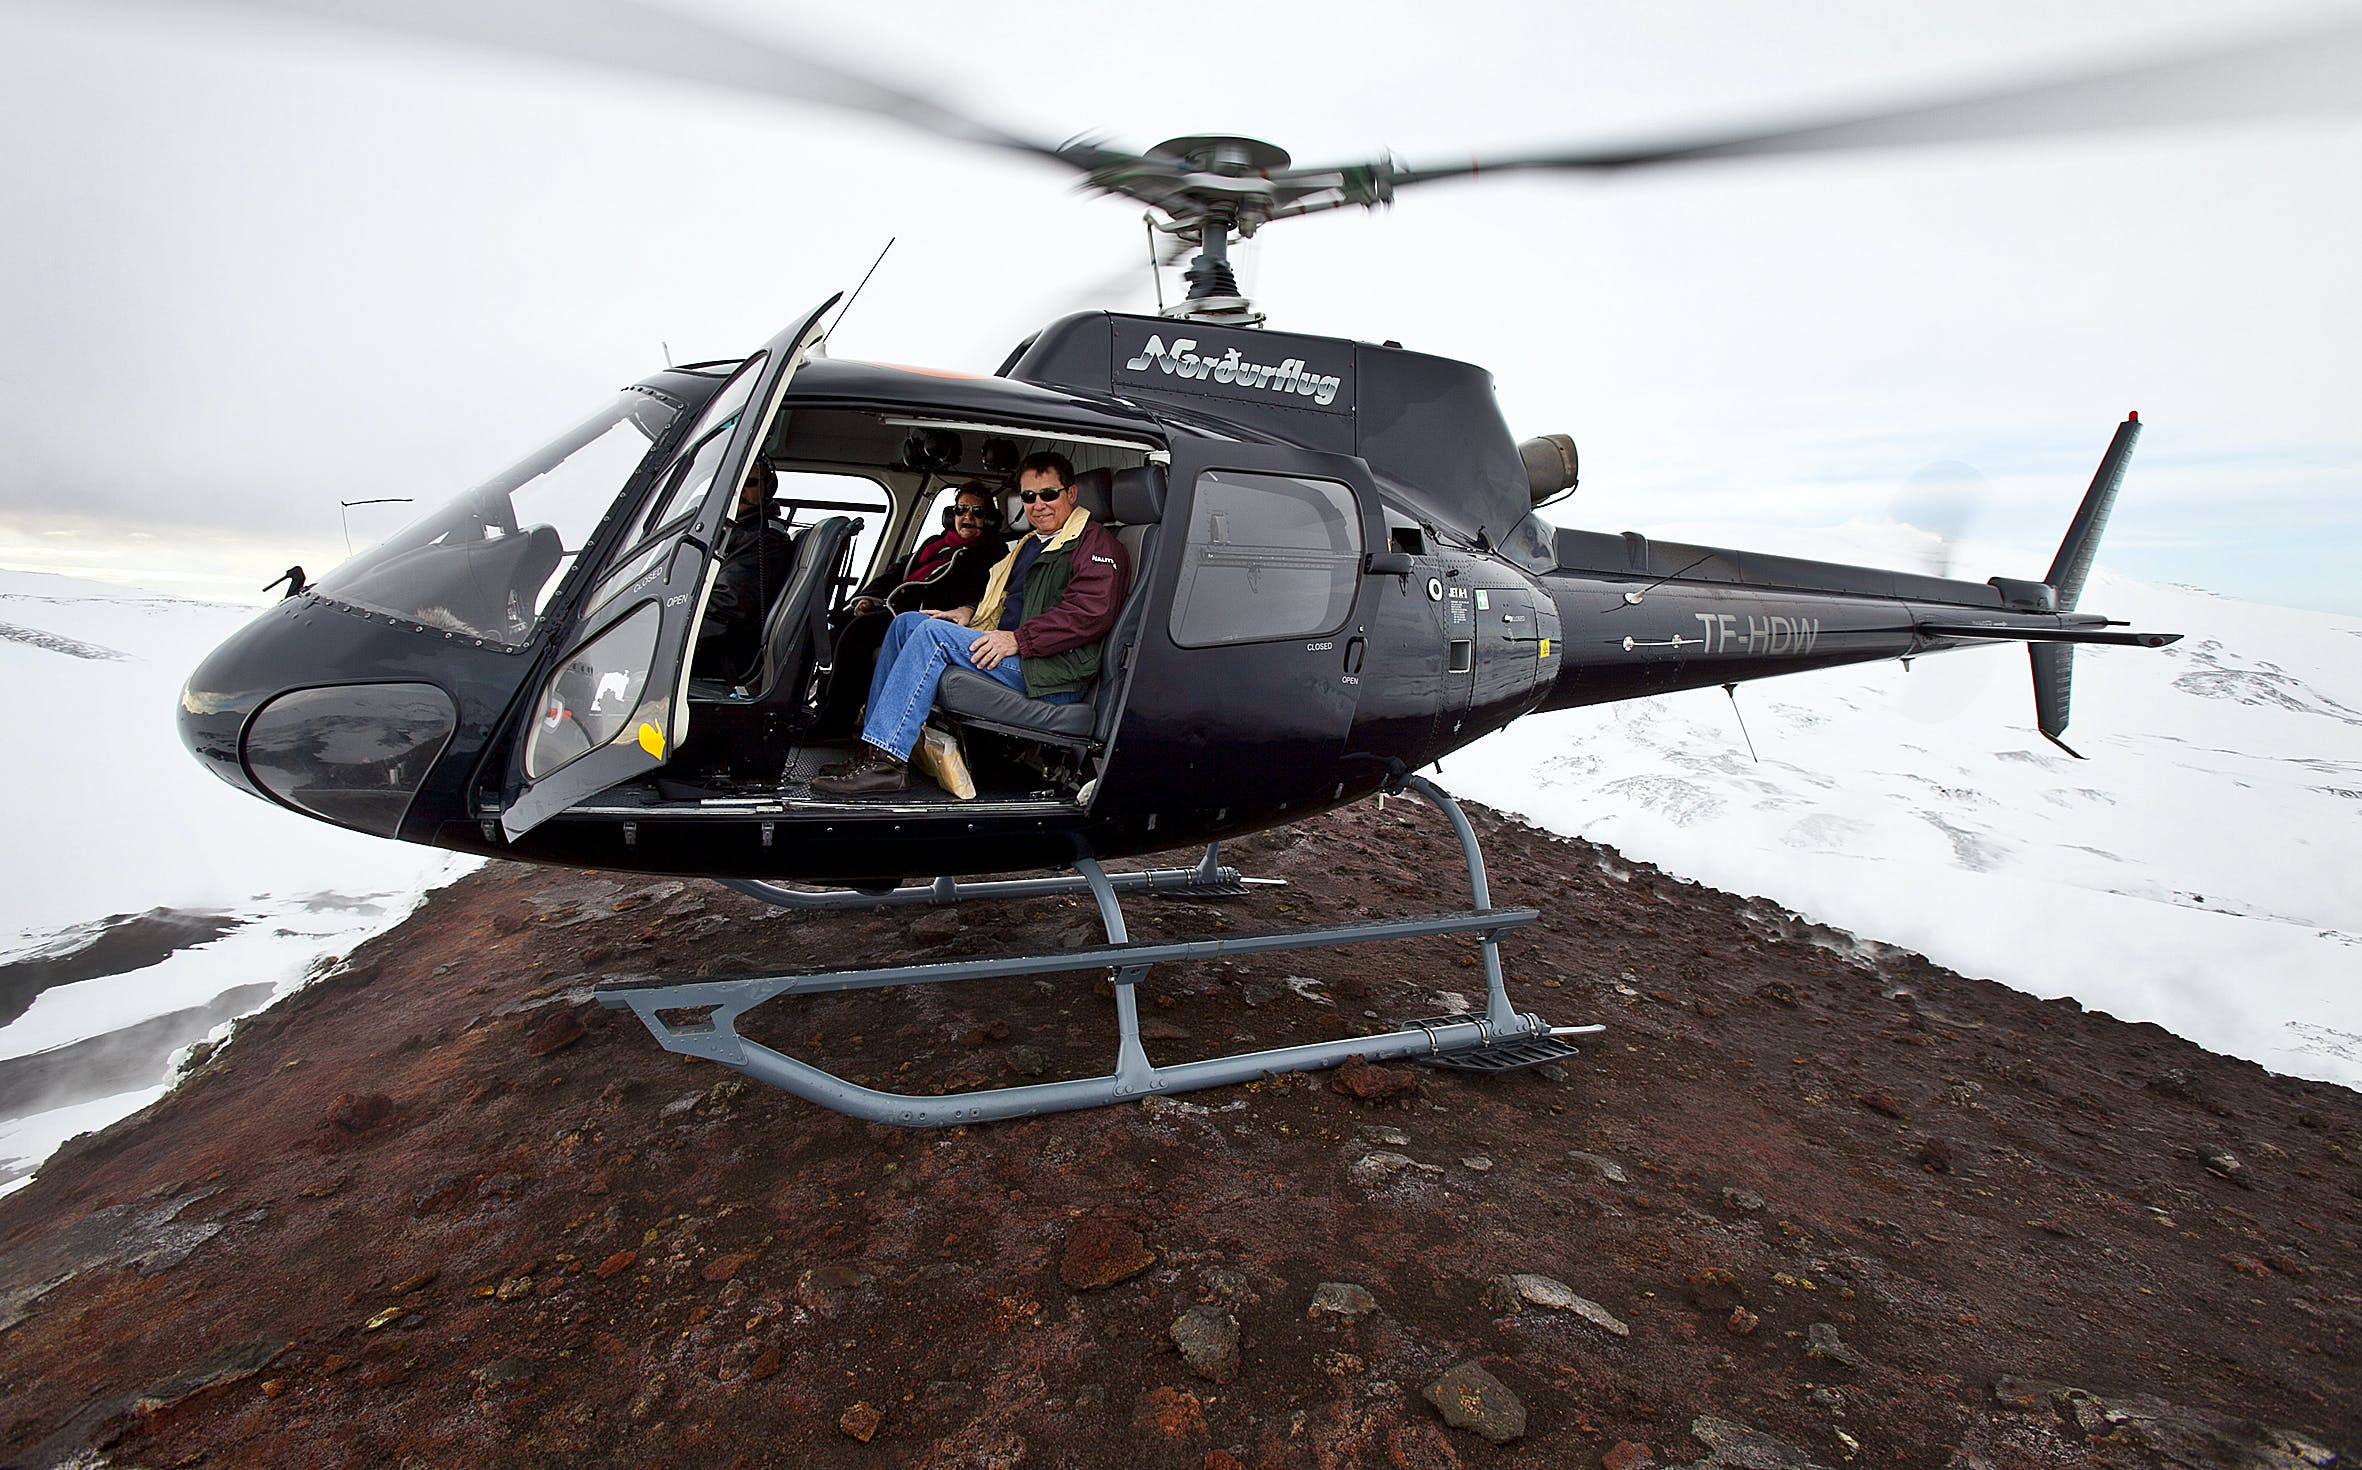 Seeing Iceland by helicopter is the best way to gain a unique perspective of the country's natural highlights.